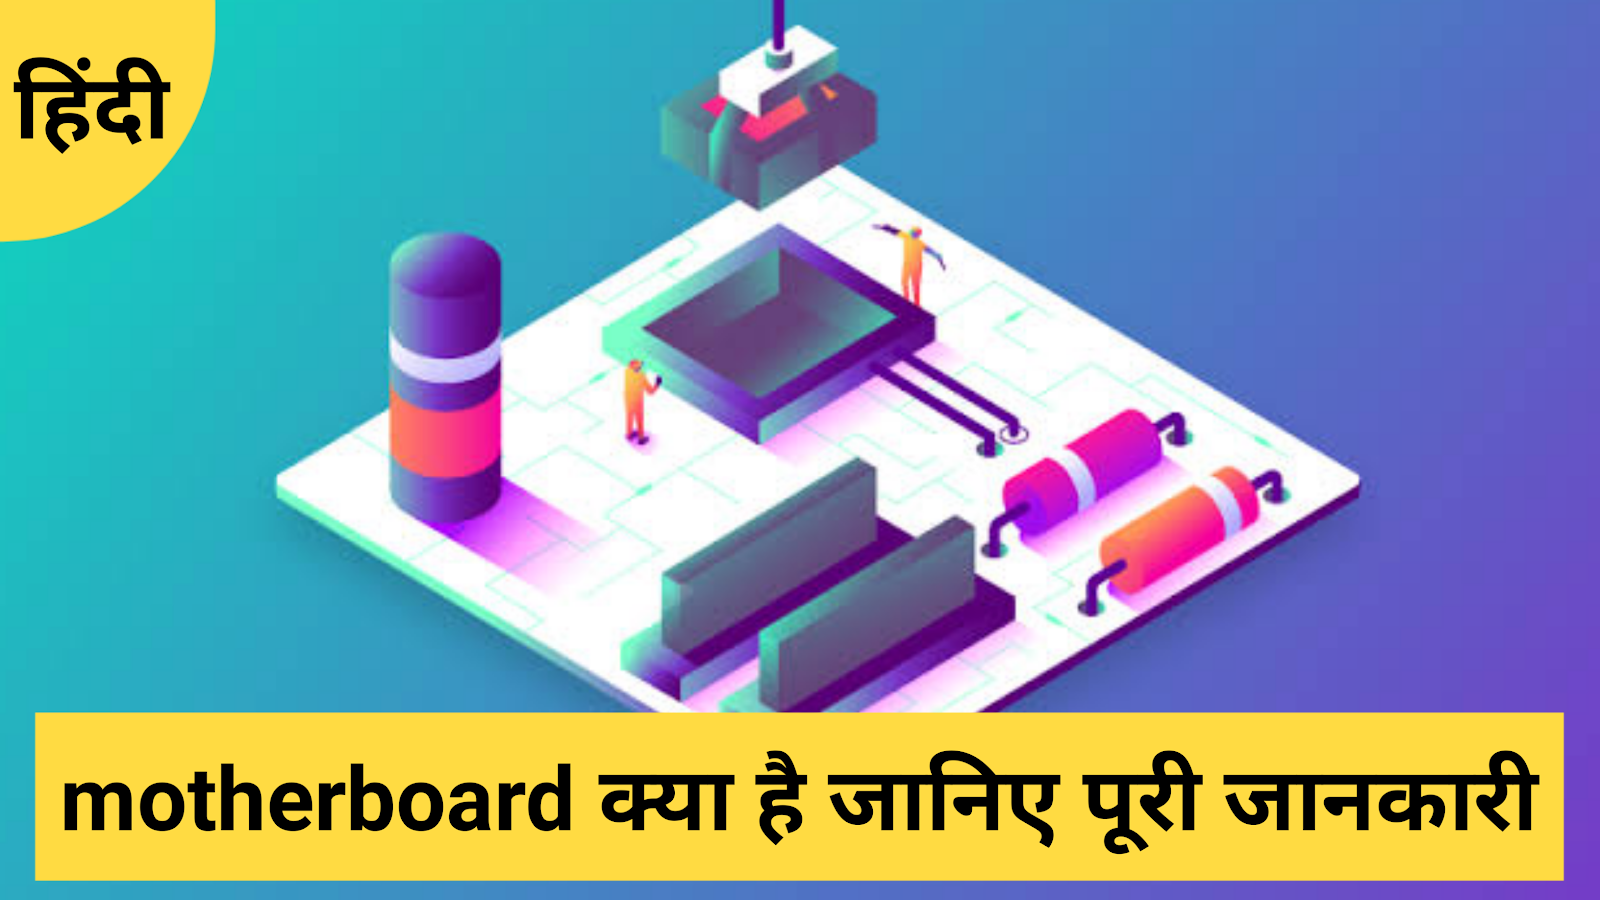 What is motherchood in hindi, motherboard kya hai in hindi